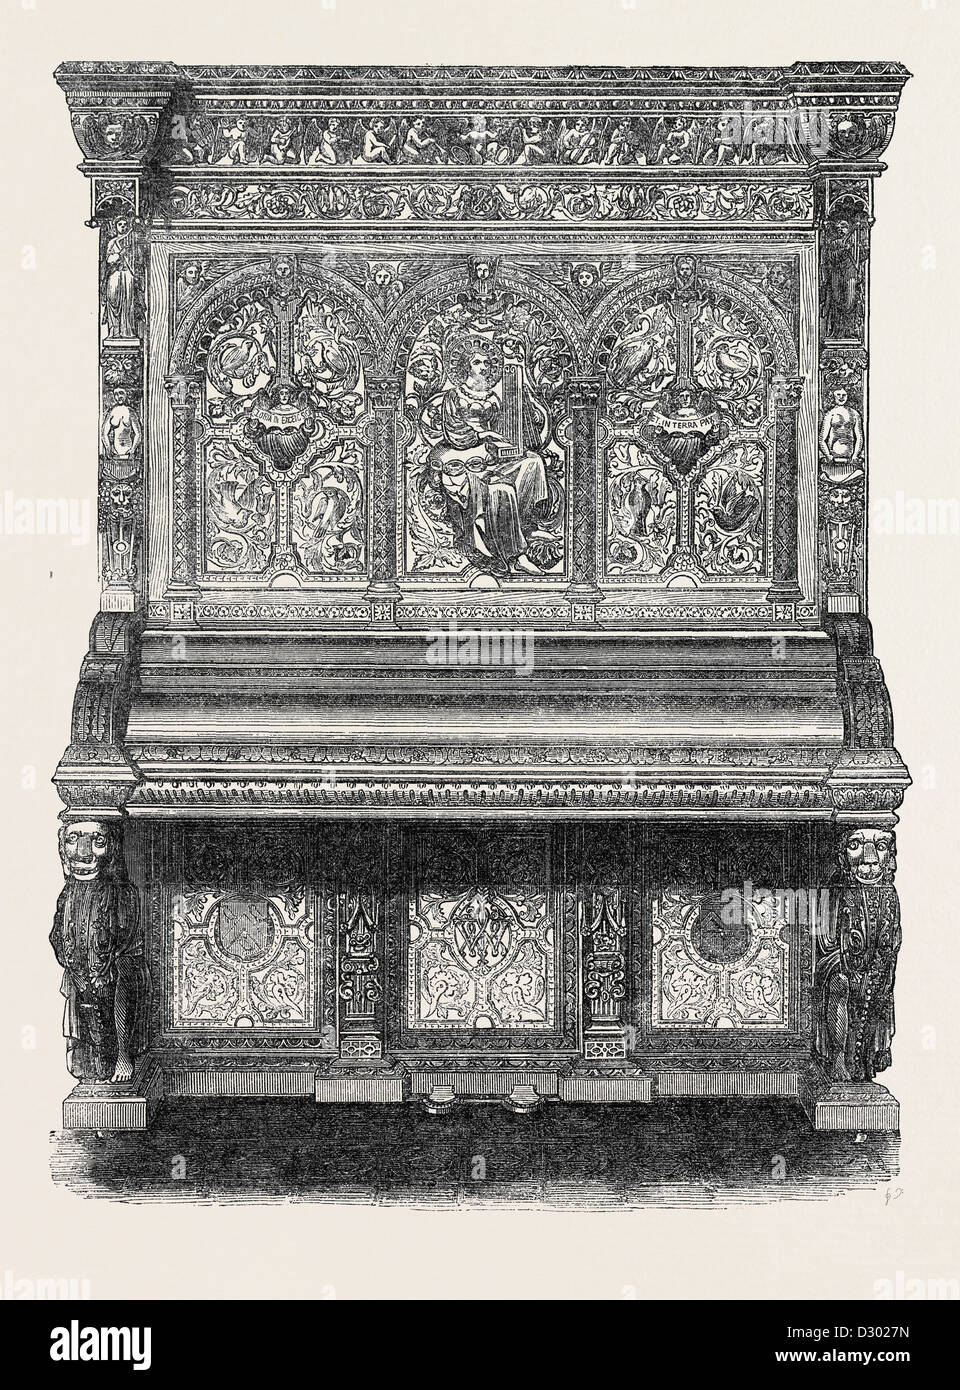 THE INTERNATIONAL EXHIBITION: PIANOFORTE BY MESSRS. ALLISON OF WARDOUR STREET 1862 - Stock Image